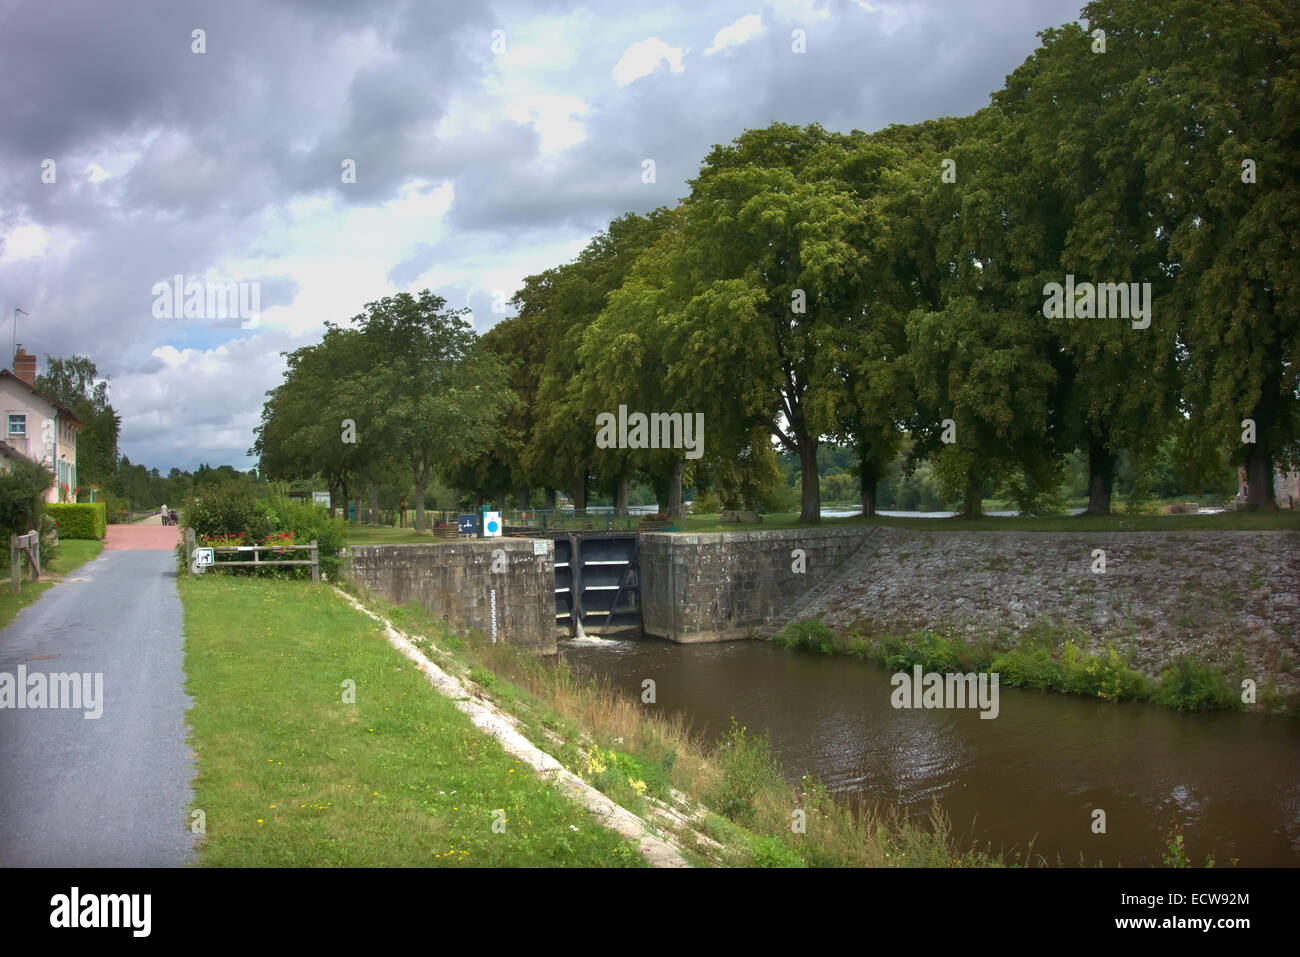 A lock - Ecluse - on the Mayenne River, France Stock Photo